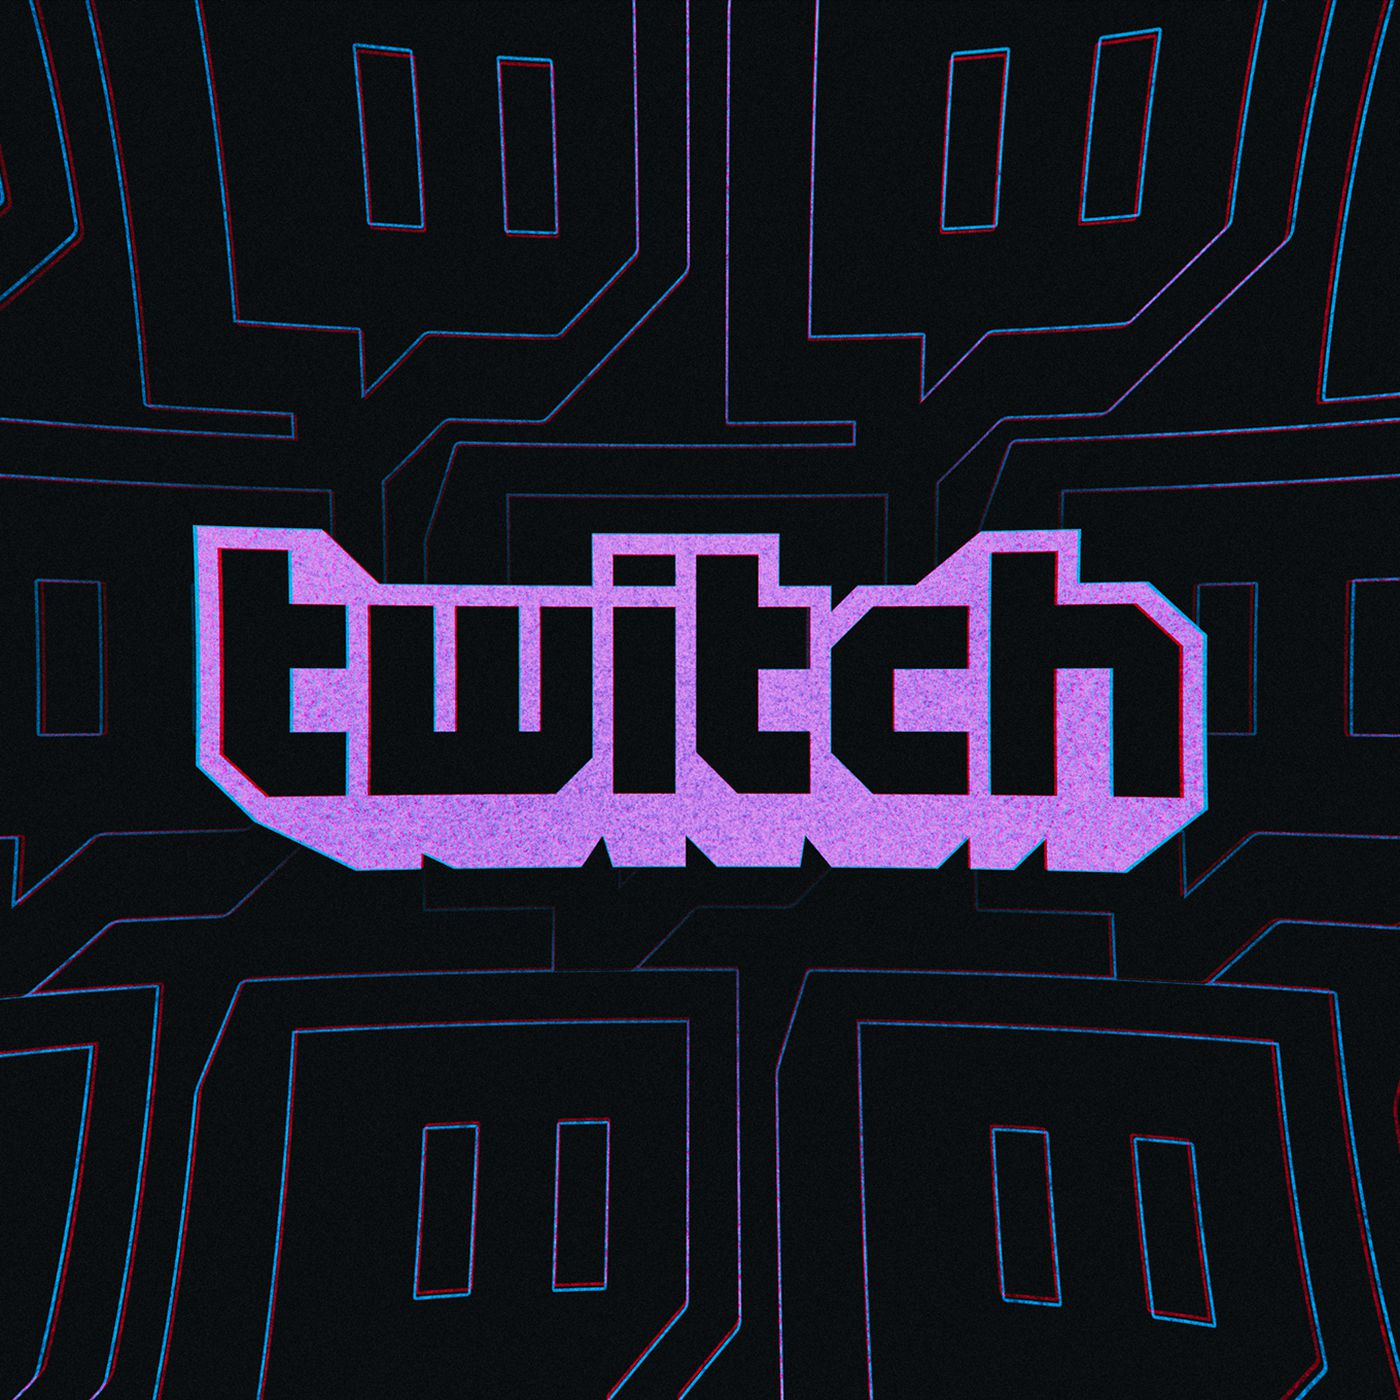 Twitch streamers are getting blindsided by years-old copyright notices -  The Verge